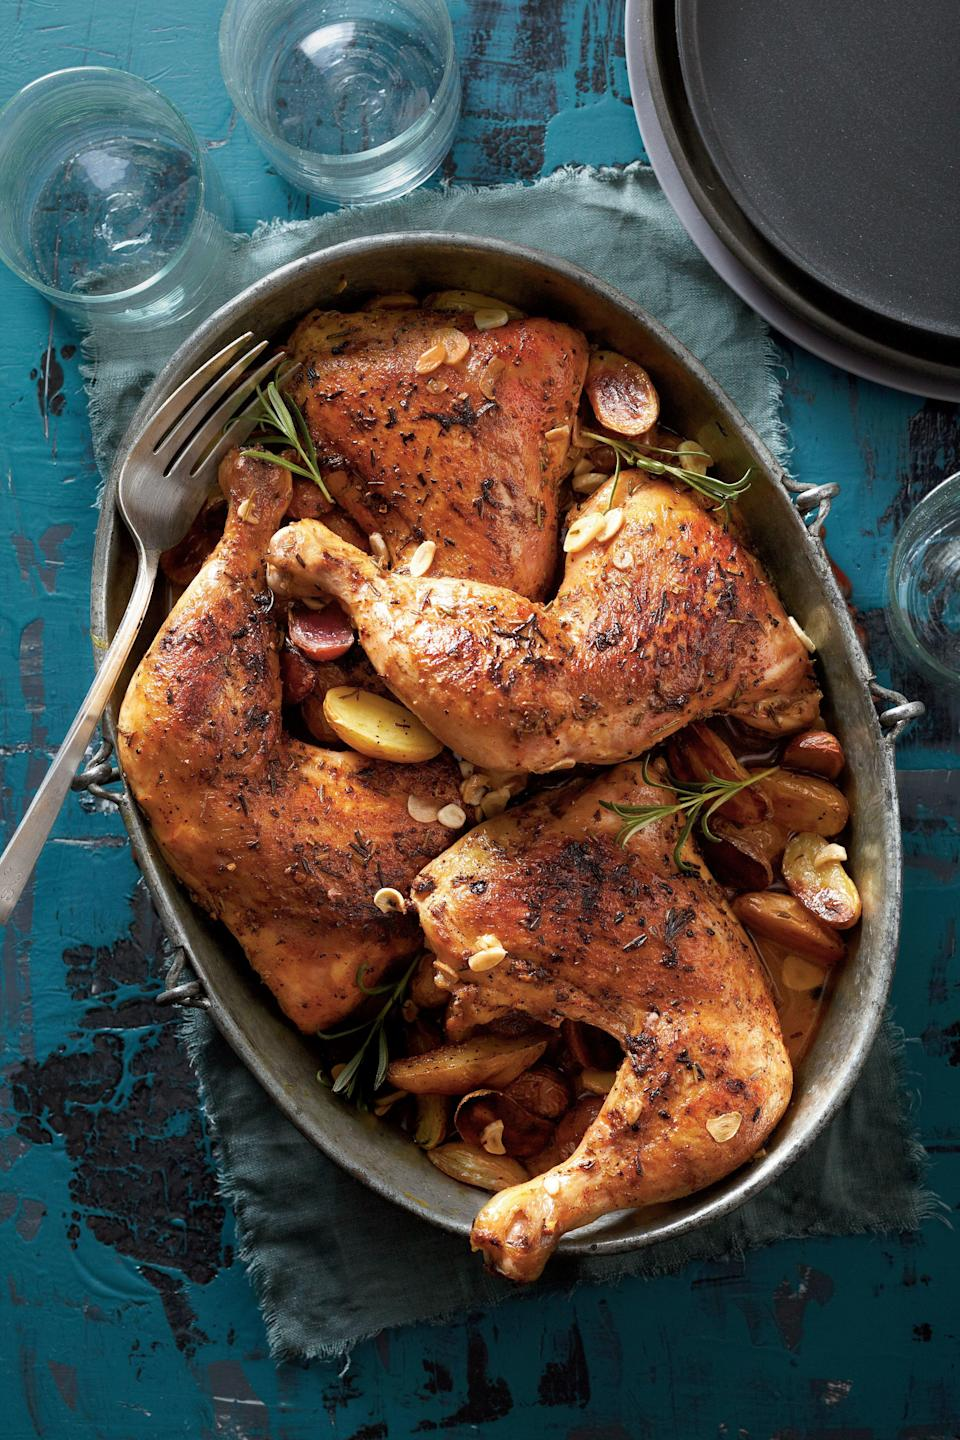 """<p><strong>Recipe:</strong> <strong><a href=""""http://www.myrecipes.com/recipe/rosemary-garlic-chicken-quarters-50400000126154/"""" rel=""""nofollow noopener"""" target=""""_blank"""" data-ylk=""""slk:Rosemary-Garlic Chicken Quarters"""" class=""""link rapid-noclick-resp"""">Rosemary-Garlic Chicken Quarters</a></strong></p> <p>The key to this dinner-party-worthy dish is to brown the chicken before it goes into the slow cooker.</p> <p><strong>Cooking Video:</strong> <a href=""""http://www.southernliving.com/food/how-to/test-kitchen-cooking-demo-00417000081023/"""" rel=""""nofollow noopener"""" target=""""_blank"""" data-ylk=""""slk:How To Make Rosemary-Garlic Chicken Quarters"""" class=""""link rapid-noclick-resp""""><strong>How To Make Rosemary-Garlic Chicken Quarters</strong></a></p>"""